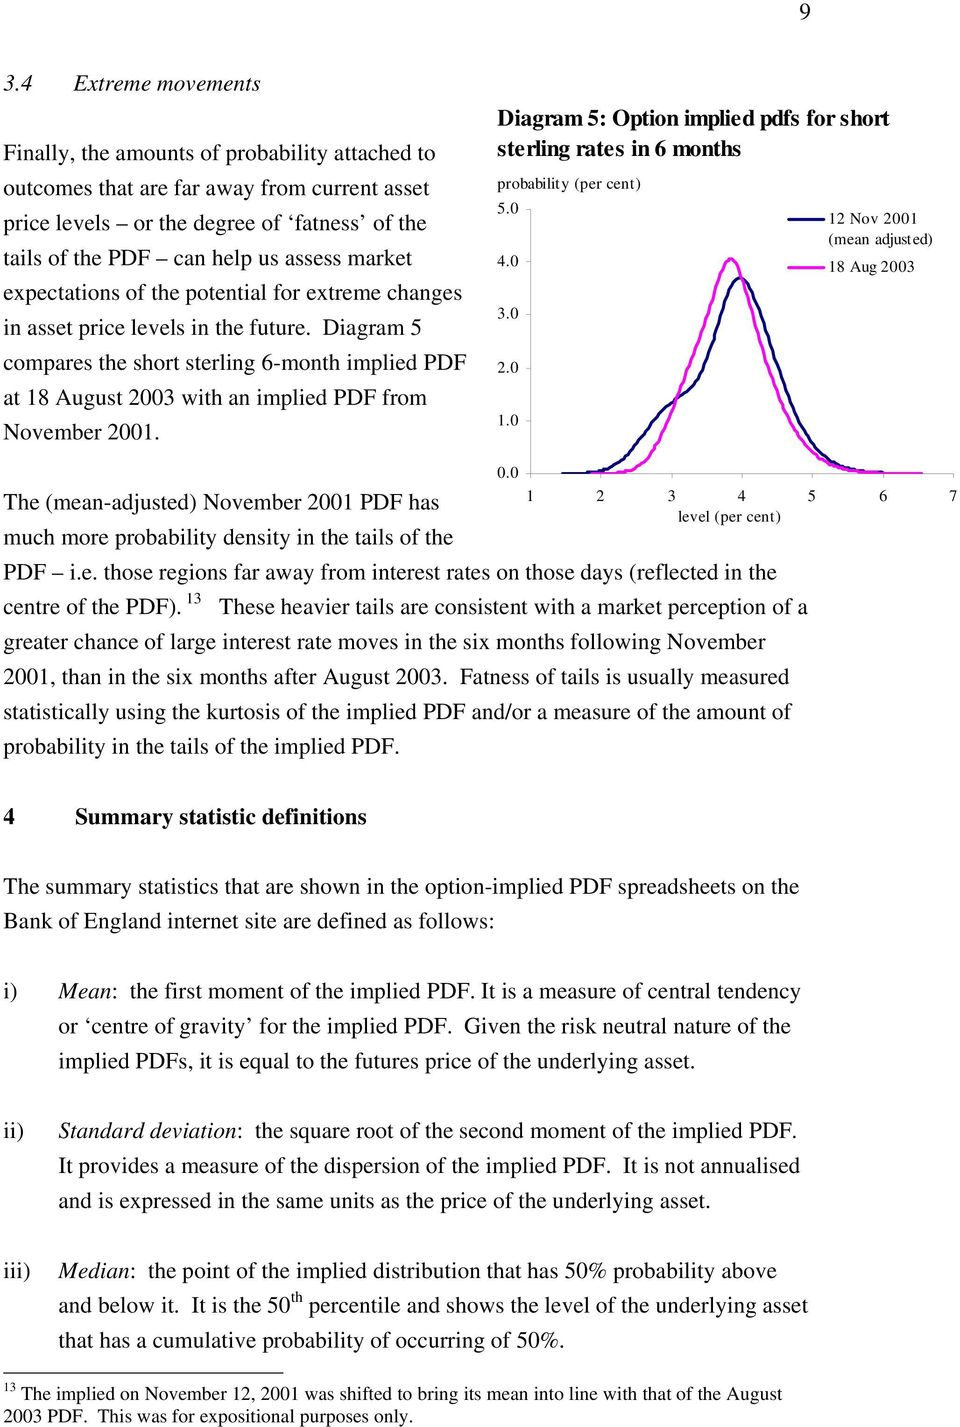 Diagram 5 compares the short sterling 6-month implied PDF at 18 August 2003 with an implied PDF from November 2001.